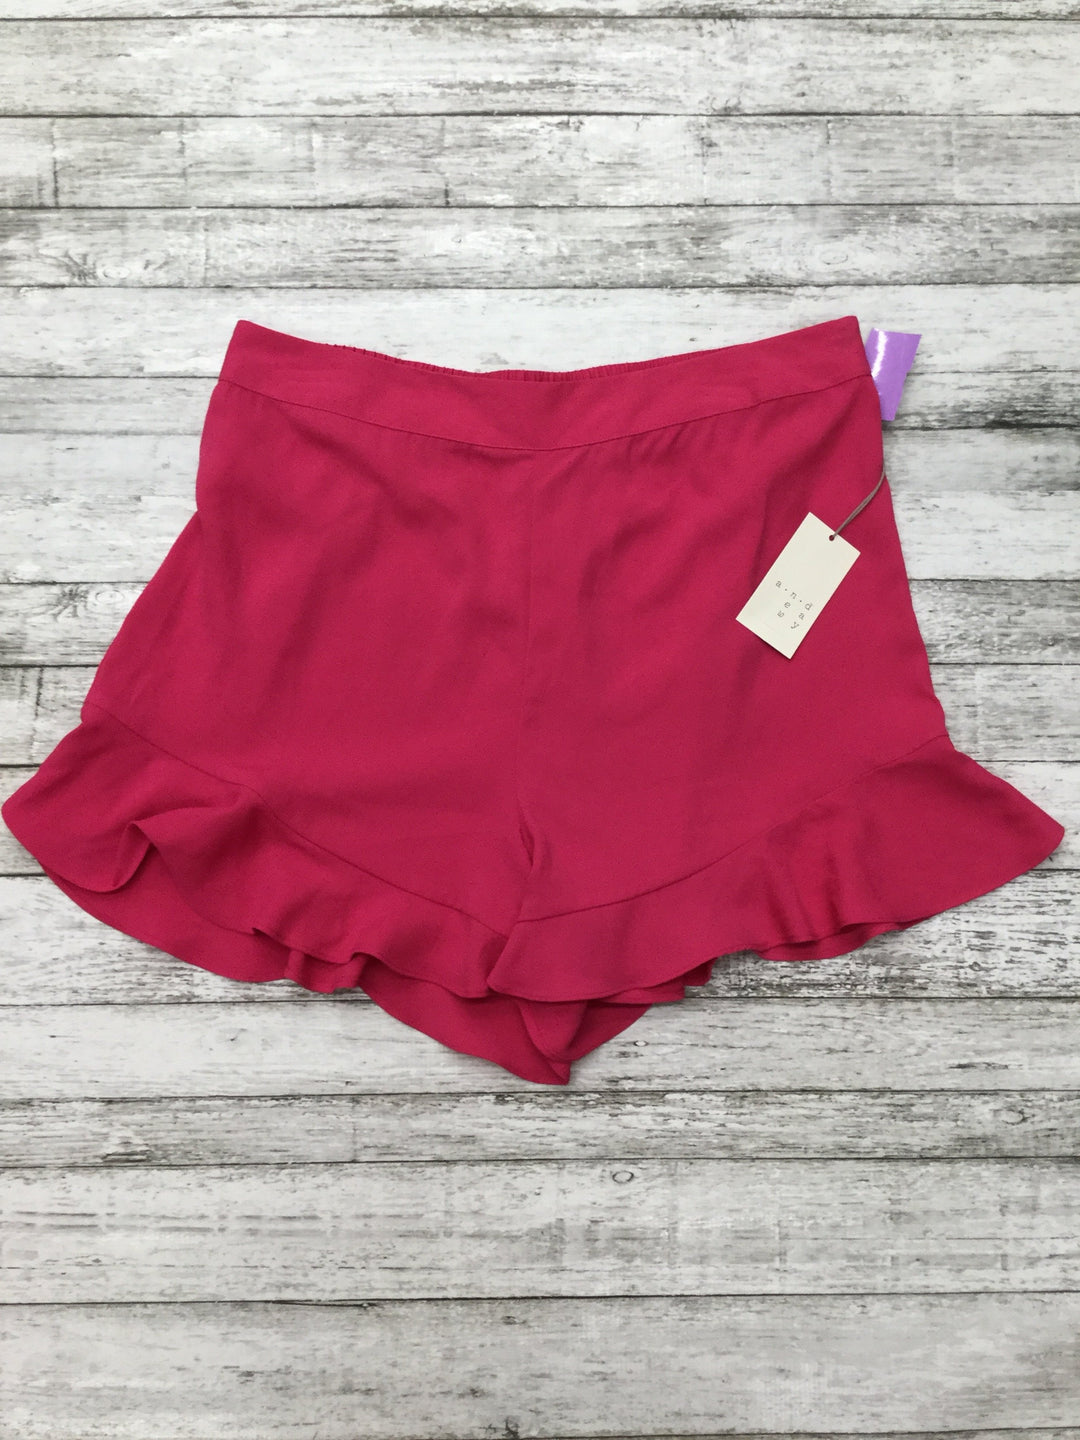 Primary Photo - brand: a new day , style: shorts , color: pink , size: l , sku: 126-3003-7633